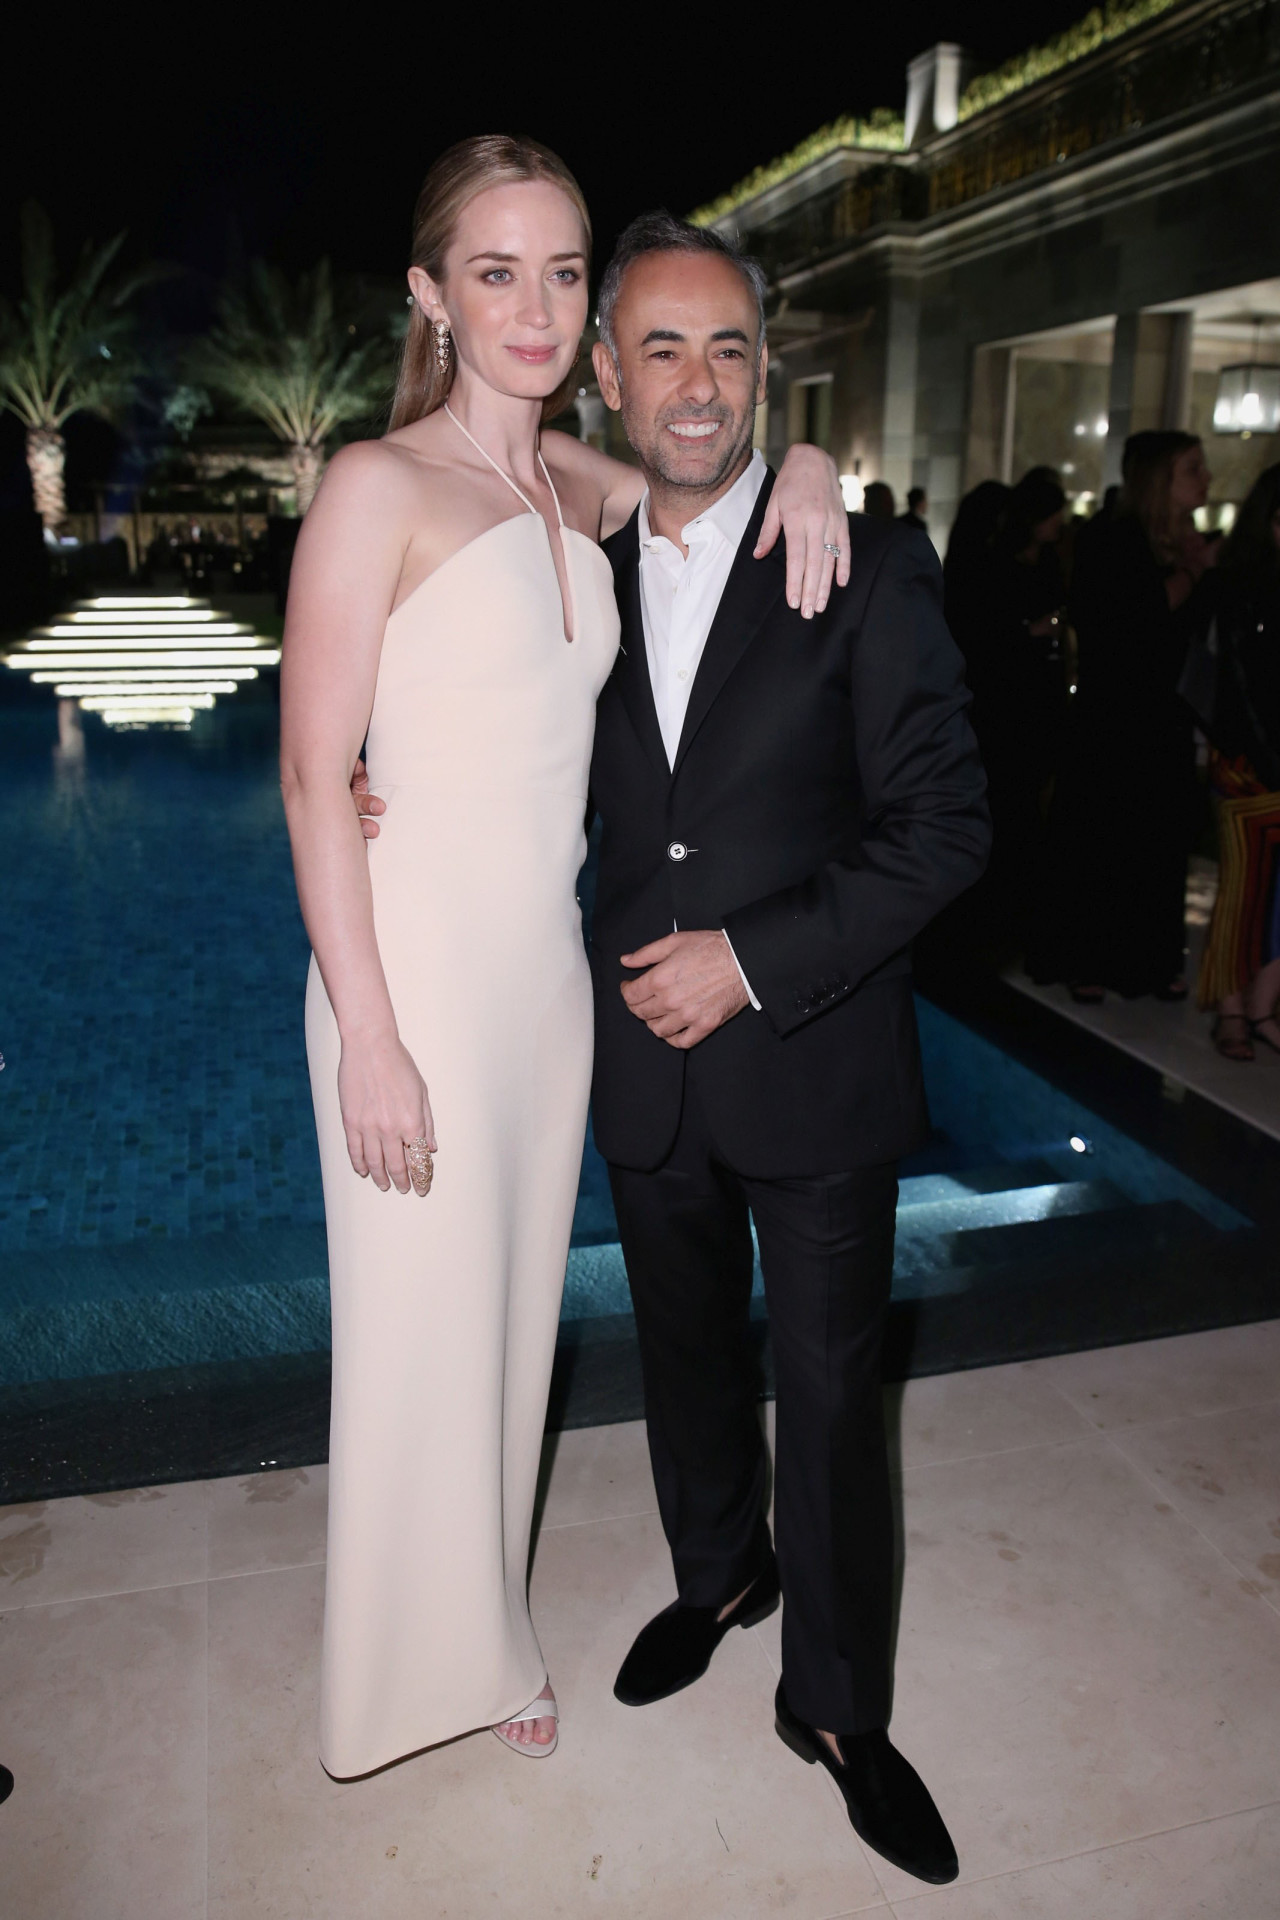 Calvin Klein Collection & euphoria Calvin Klein Celebrated Women in Film at the 68th Cannes Film Festival. The party honoured Rachel Weisz, Emily Blunt, Isabelle Huppert, Mélanie Laurent and Sienna Miller. Check out all the red carpet arrivals and sneak peek inside the exclusive party. Photo Credit: 2015 Getty Images Entertainment - 2015